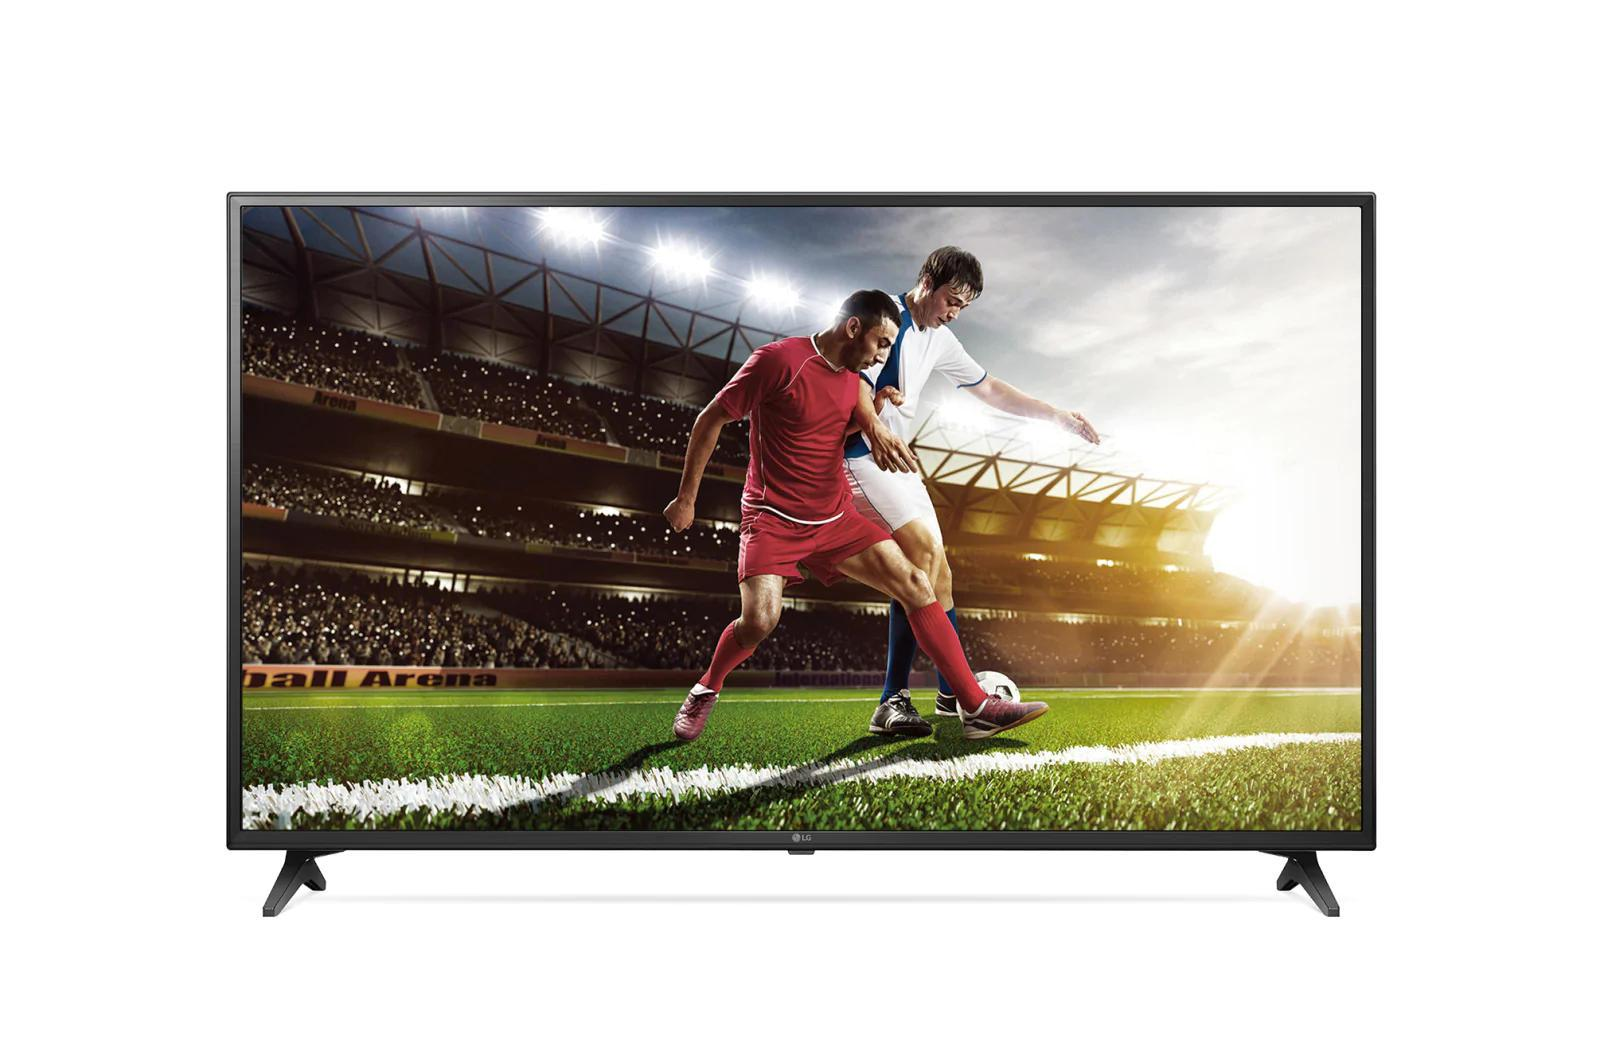 Televisions & Recorders 60UU640C 60in LED 4K UHD Commercial TV